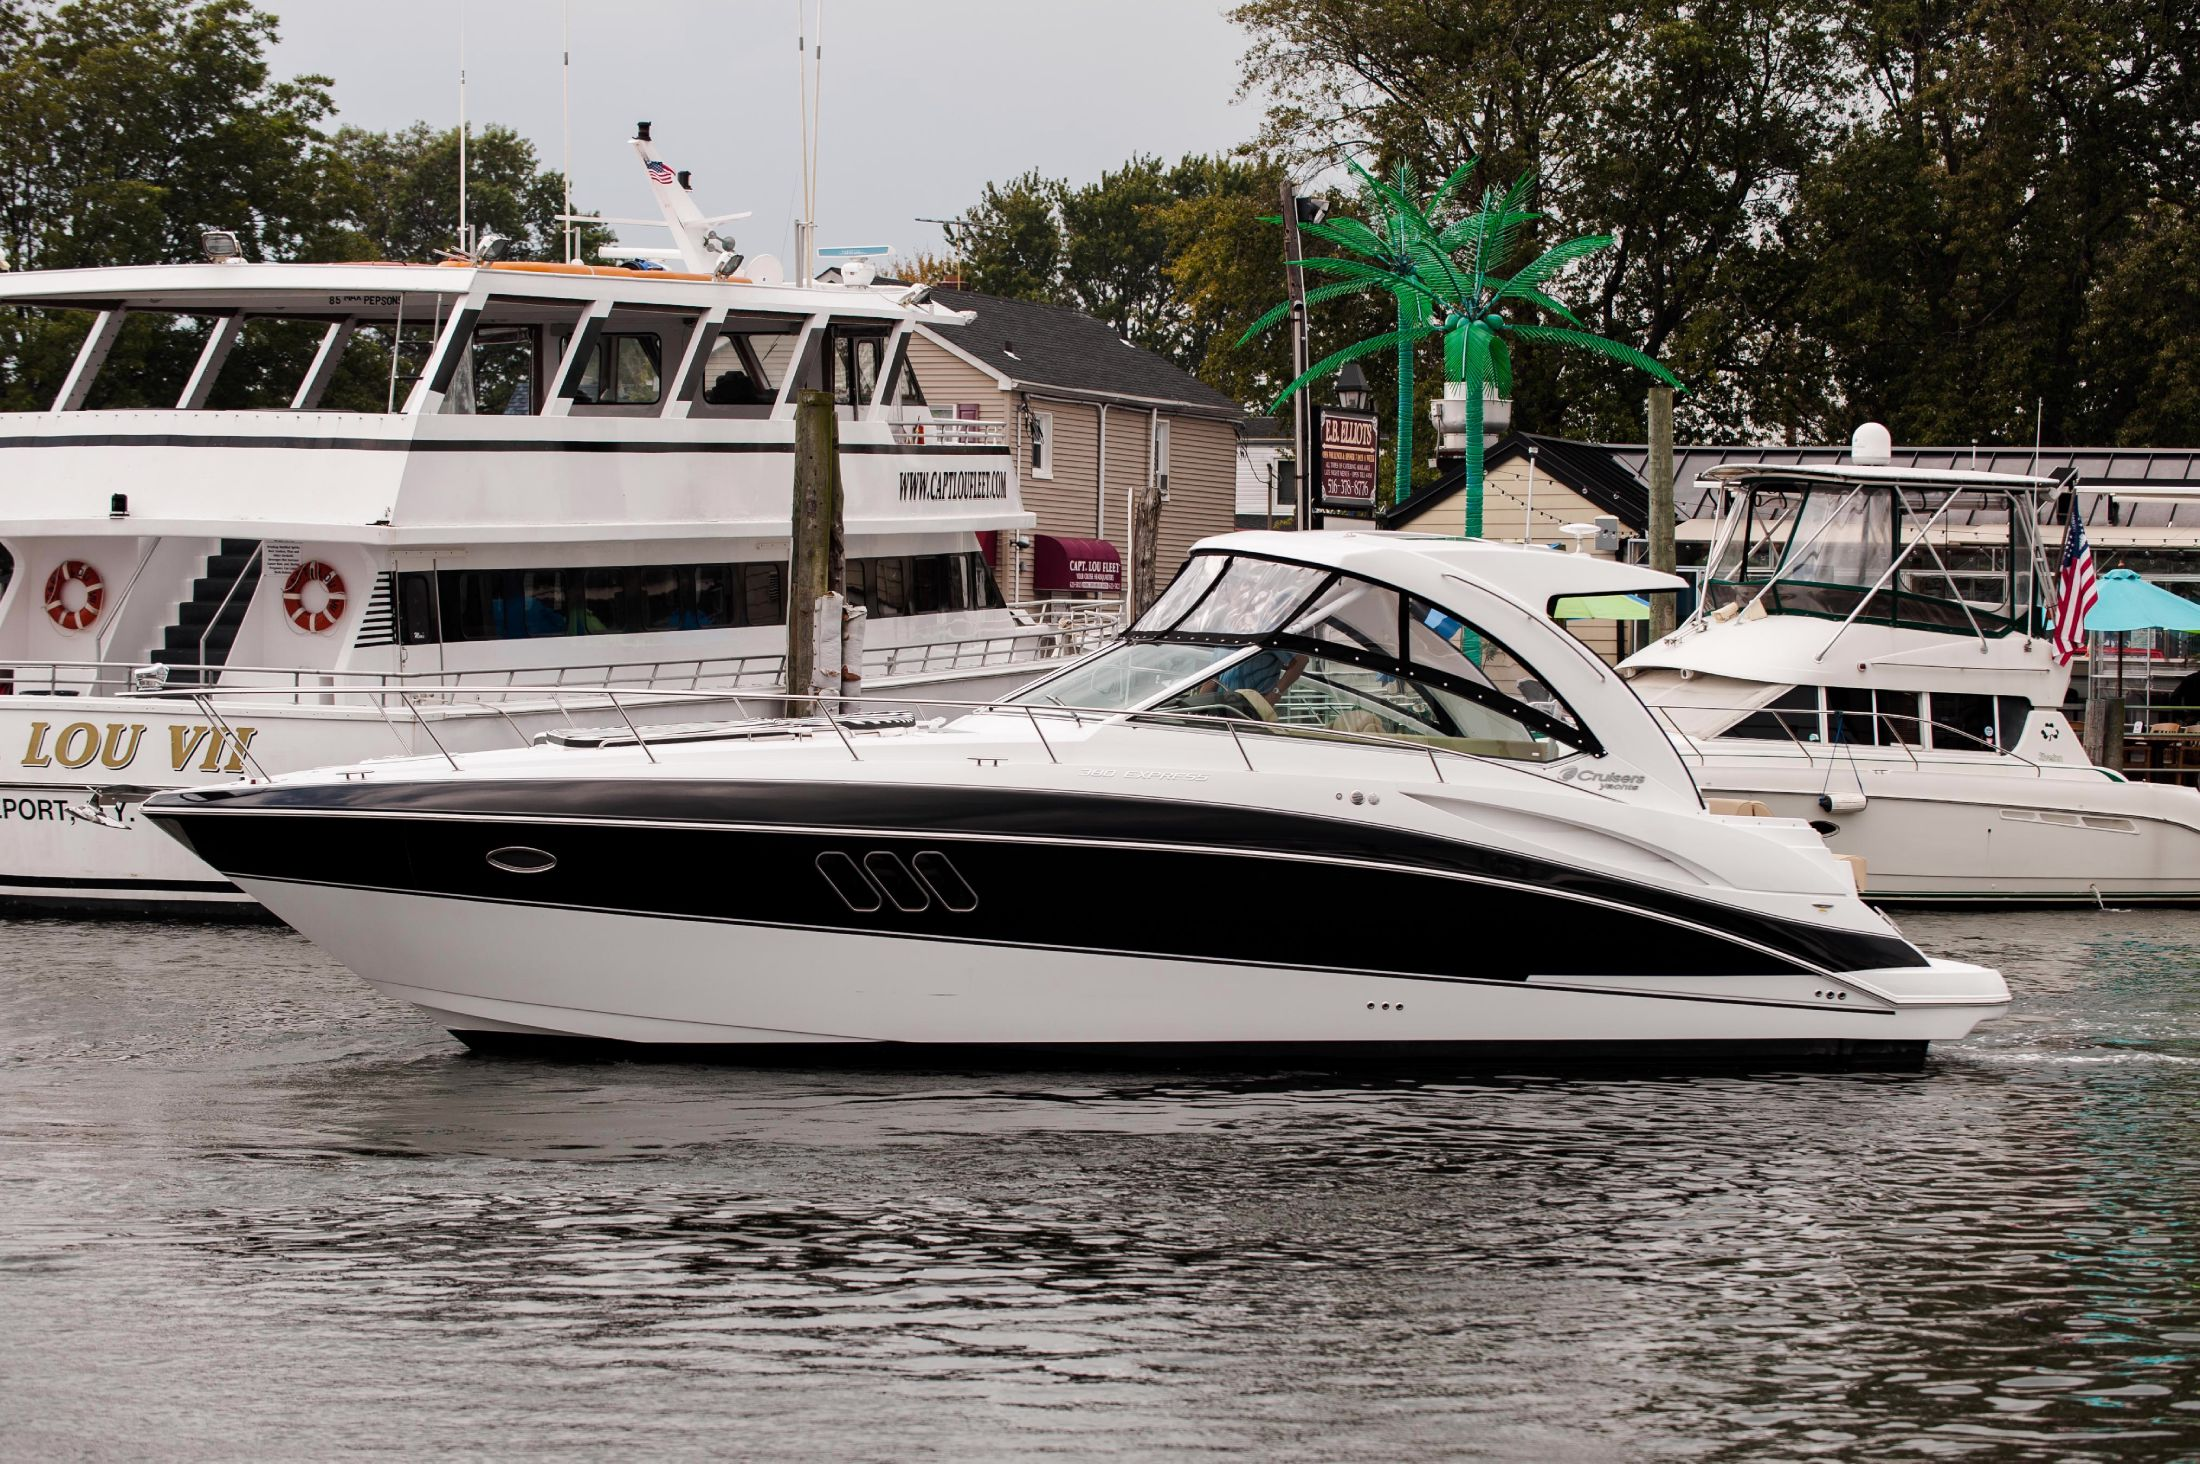 2019 Cruisers 380 Express Power Boat For Sale Www